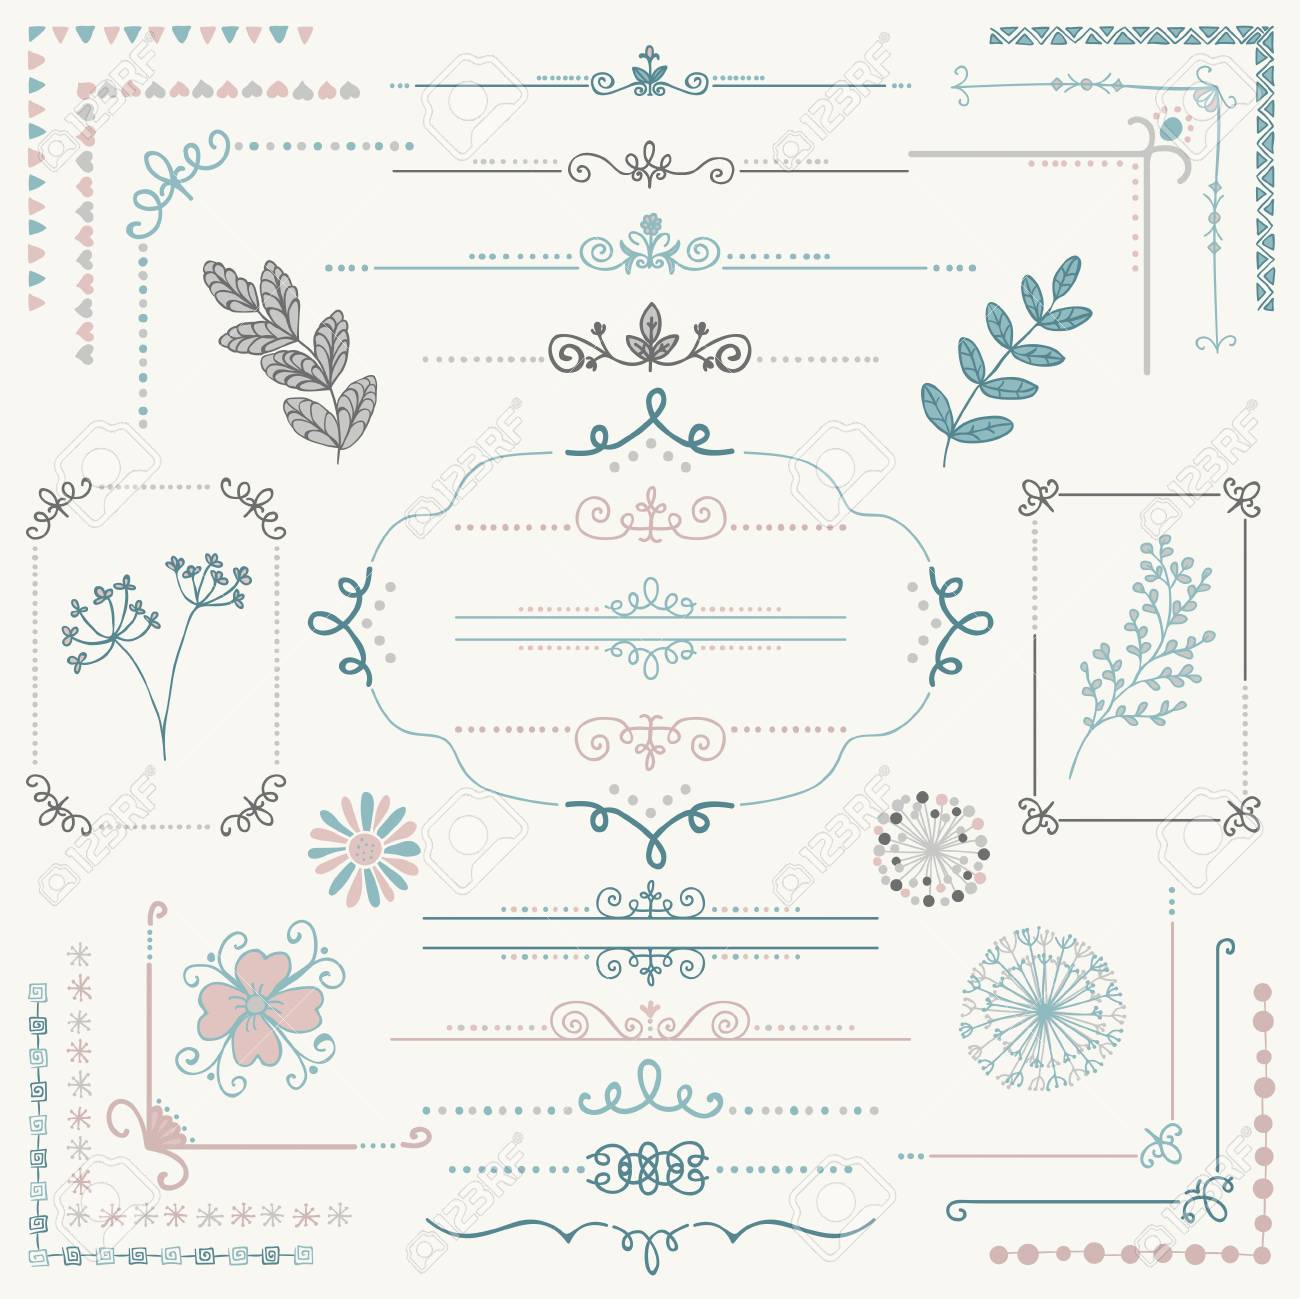 page rustic elements. Decorative Colorful Sketched Rustic Floral Doodle Corners, Branches, Frames, Dividers, Text Frames Page Elements R